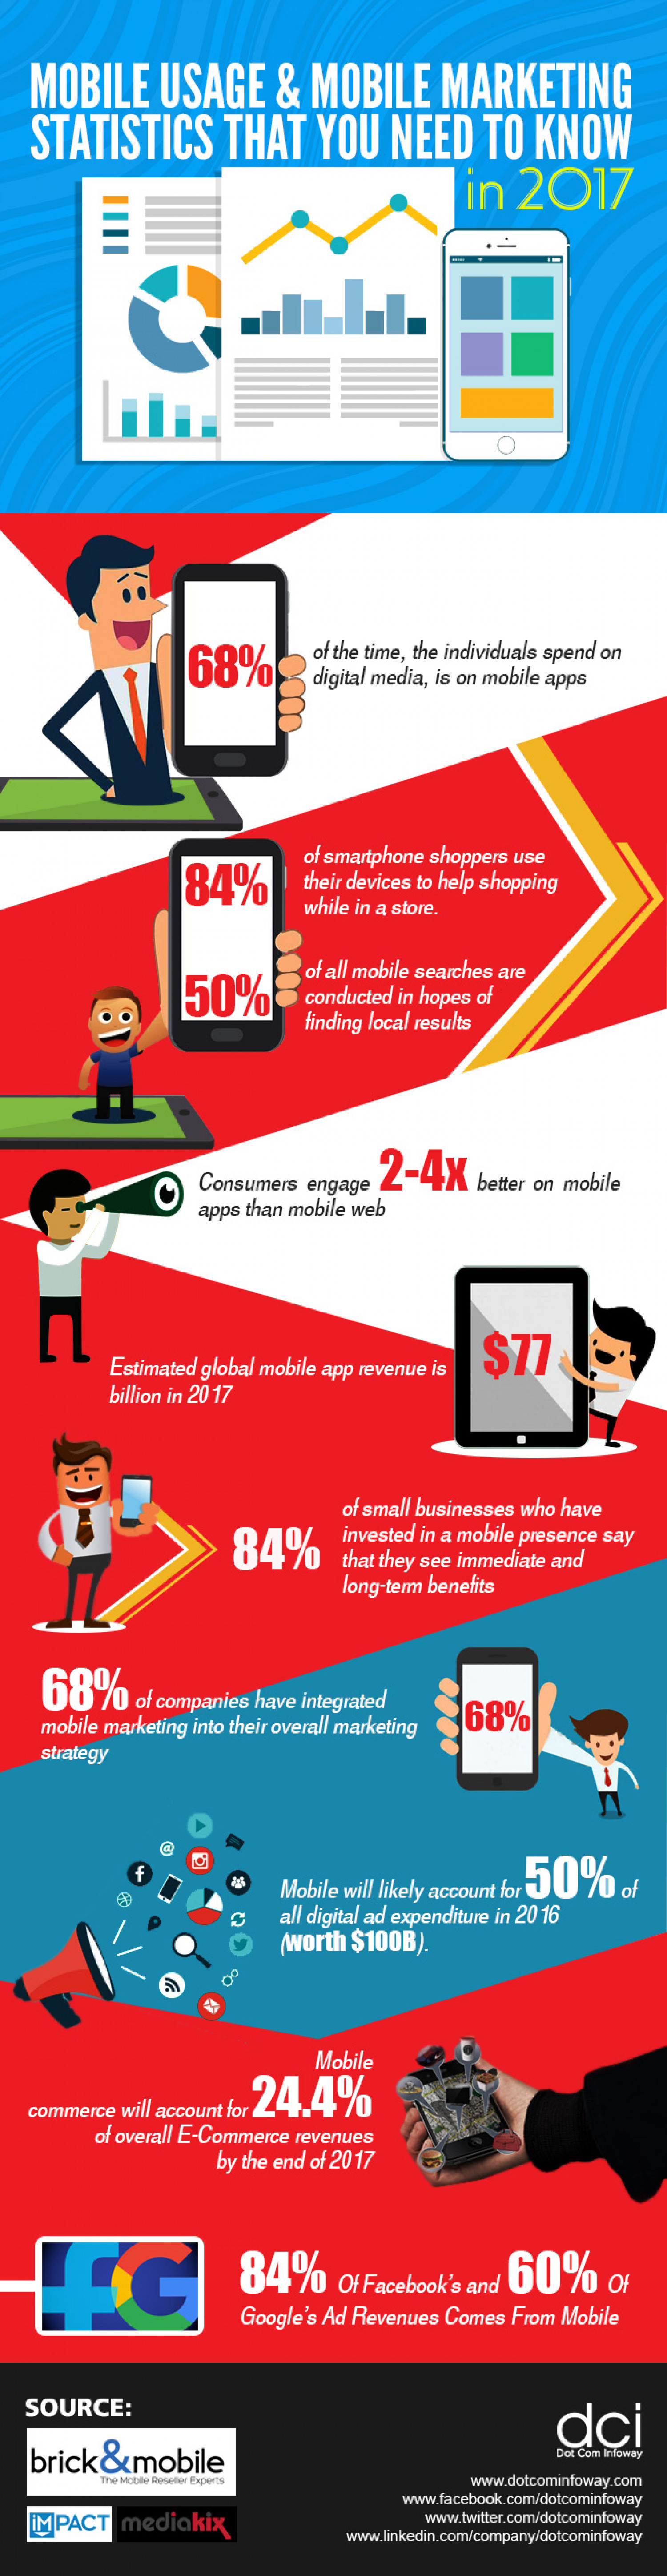 Mobile Usage & Mobile Marketing Statistics 2017 Infographic